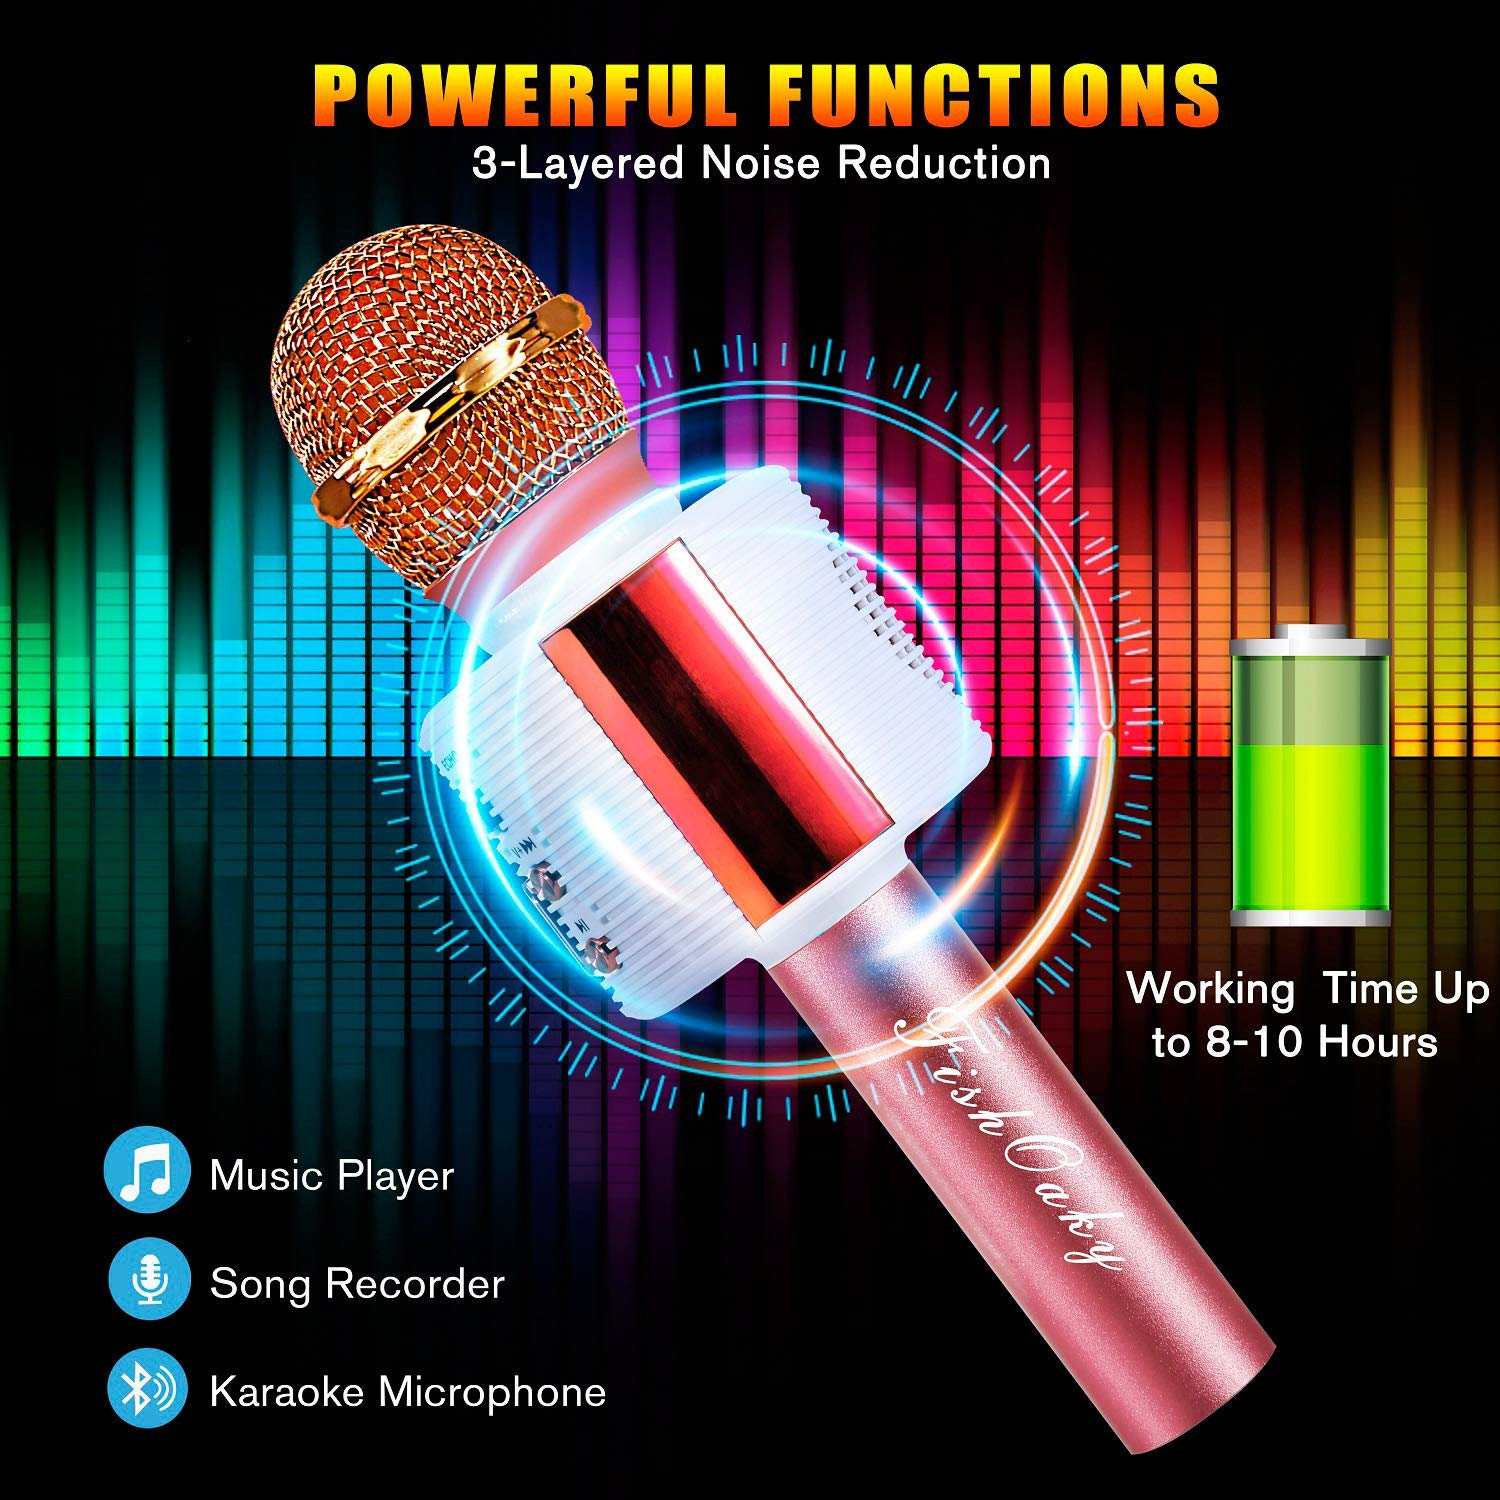 FishOaky Wireless Bluetooth Karaoke Microphone, Portable Kids Microphone Karaoke Player Speaker with LED & Music Singing Voice Recording for Home KTV Kids Outdoor Birthday Party (Rose Gold) by FishOaky (Image #4)